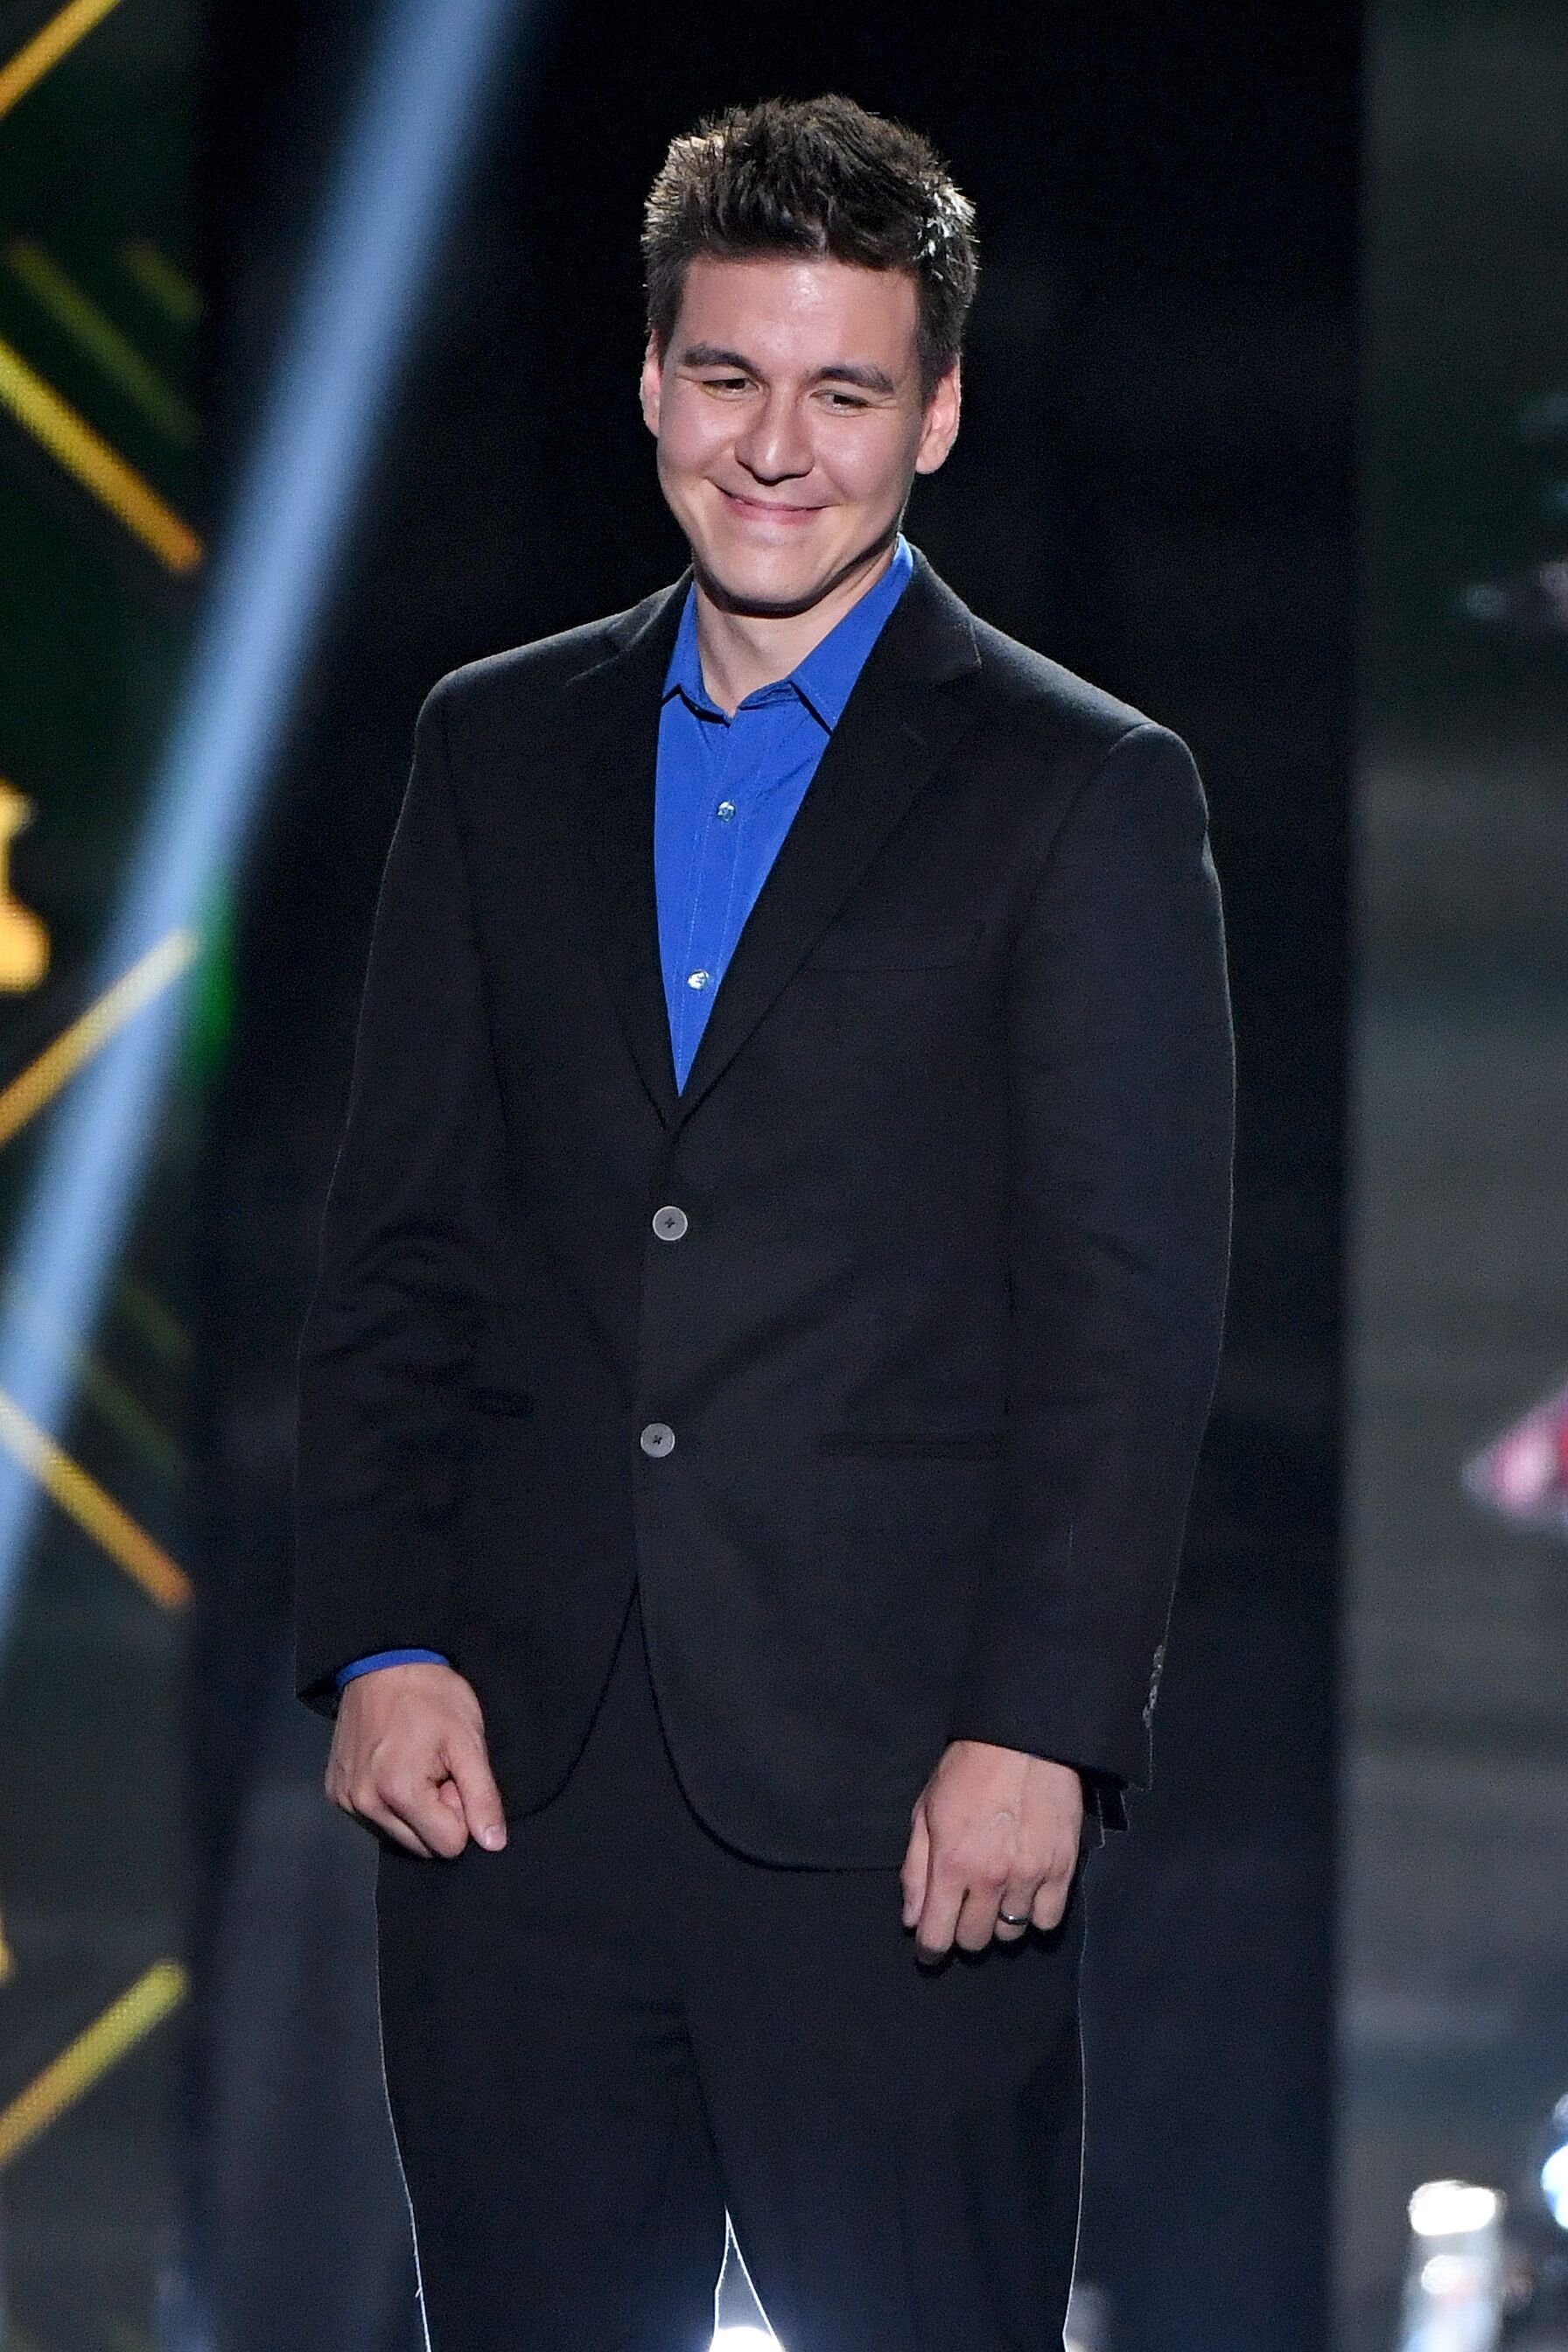 James Holzhauer at the NHL Awards held at the Mandalay Bay Events Center on June 19, 2019, in Las Vegas, Nevada | Photo: Ethan Miller/Getty Images